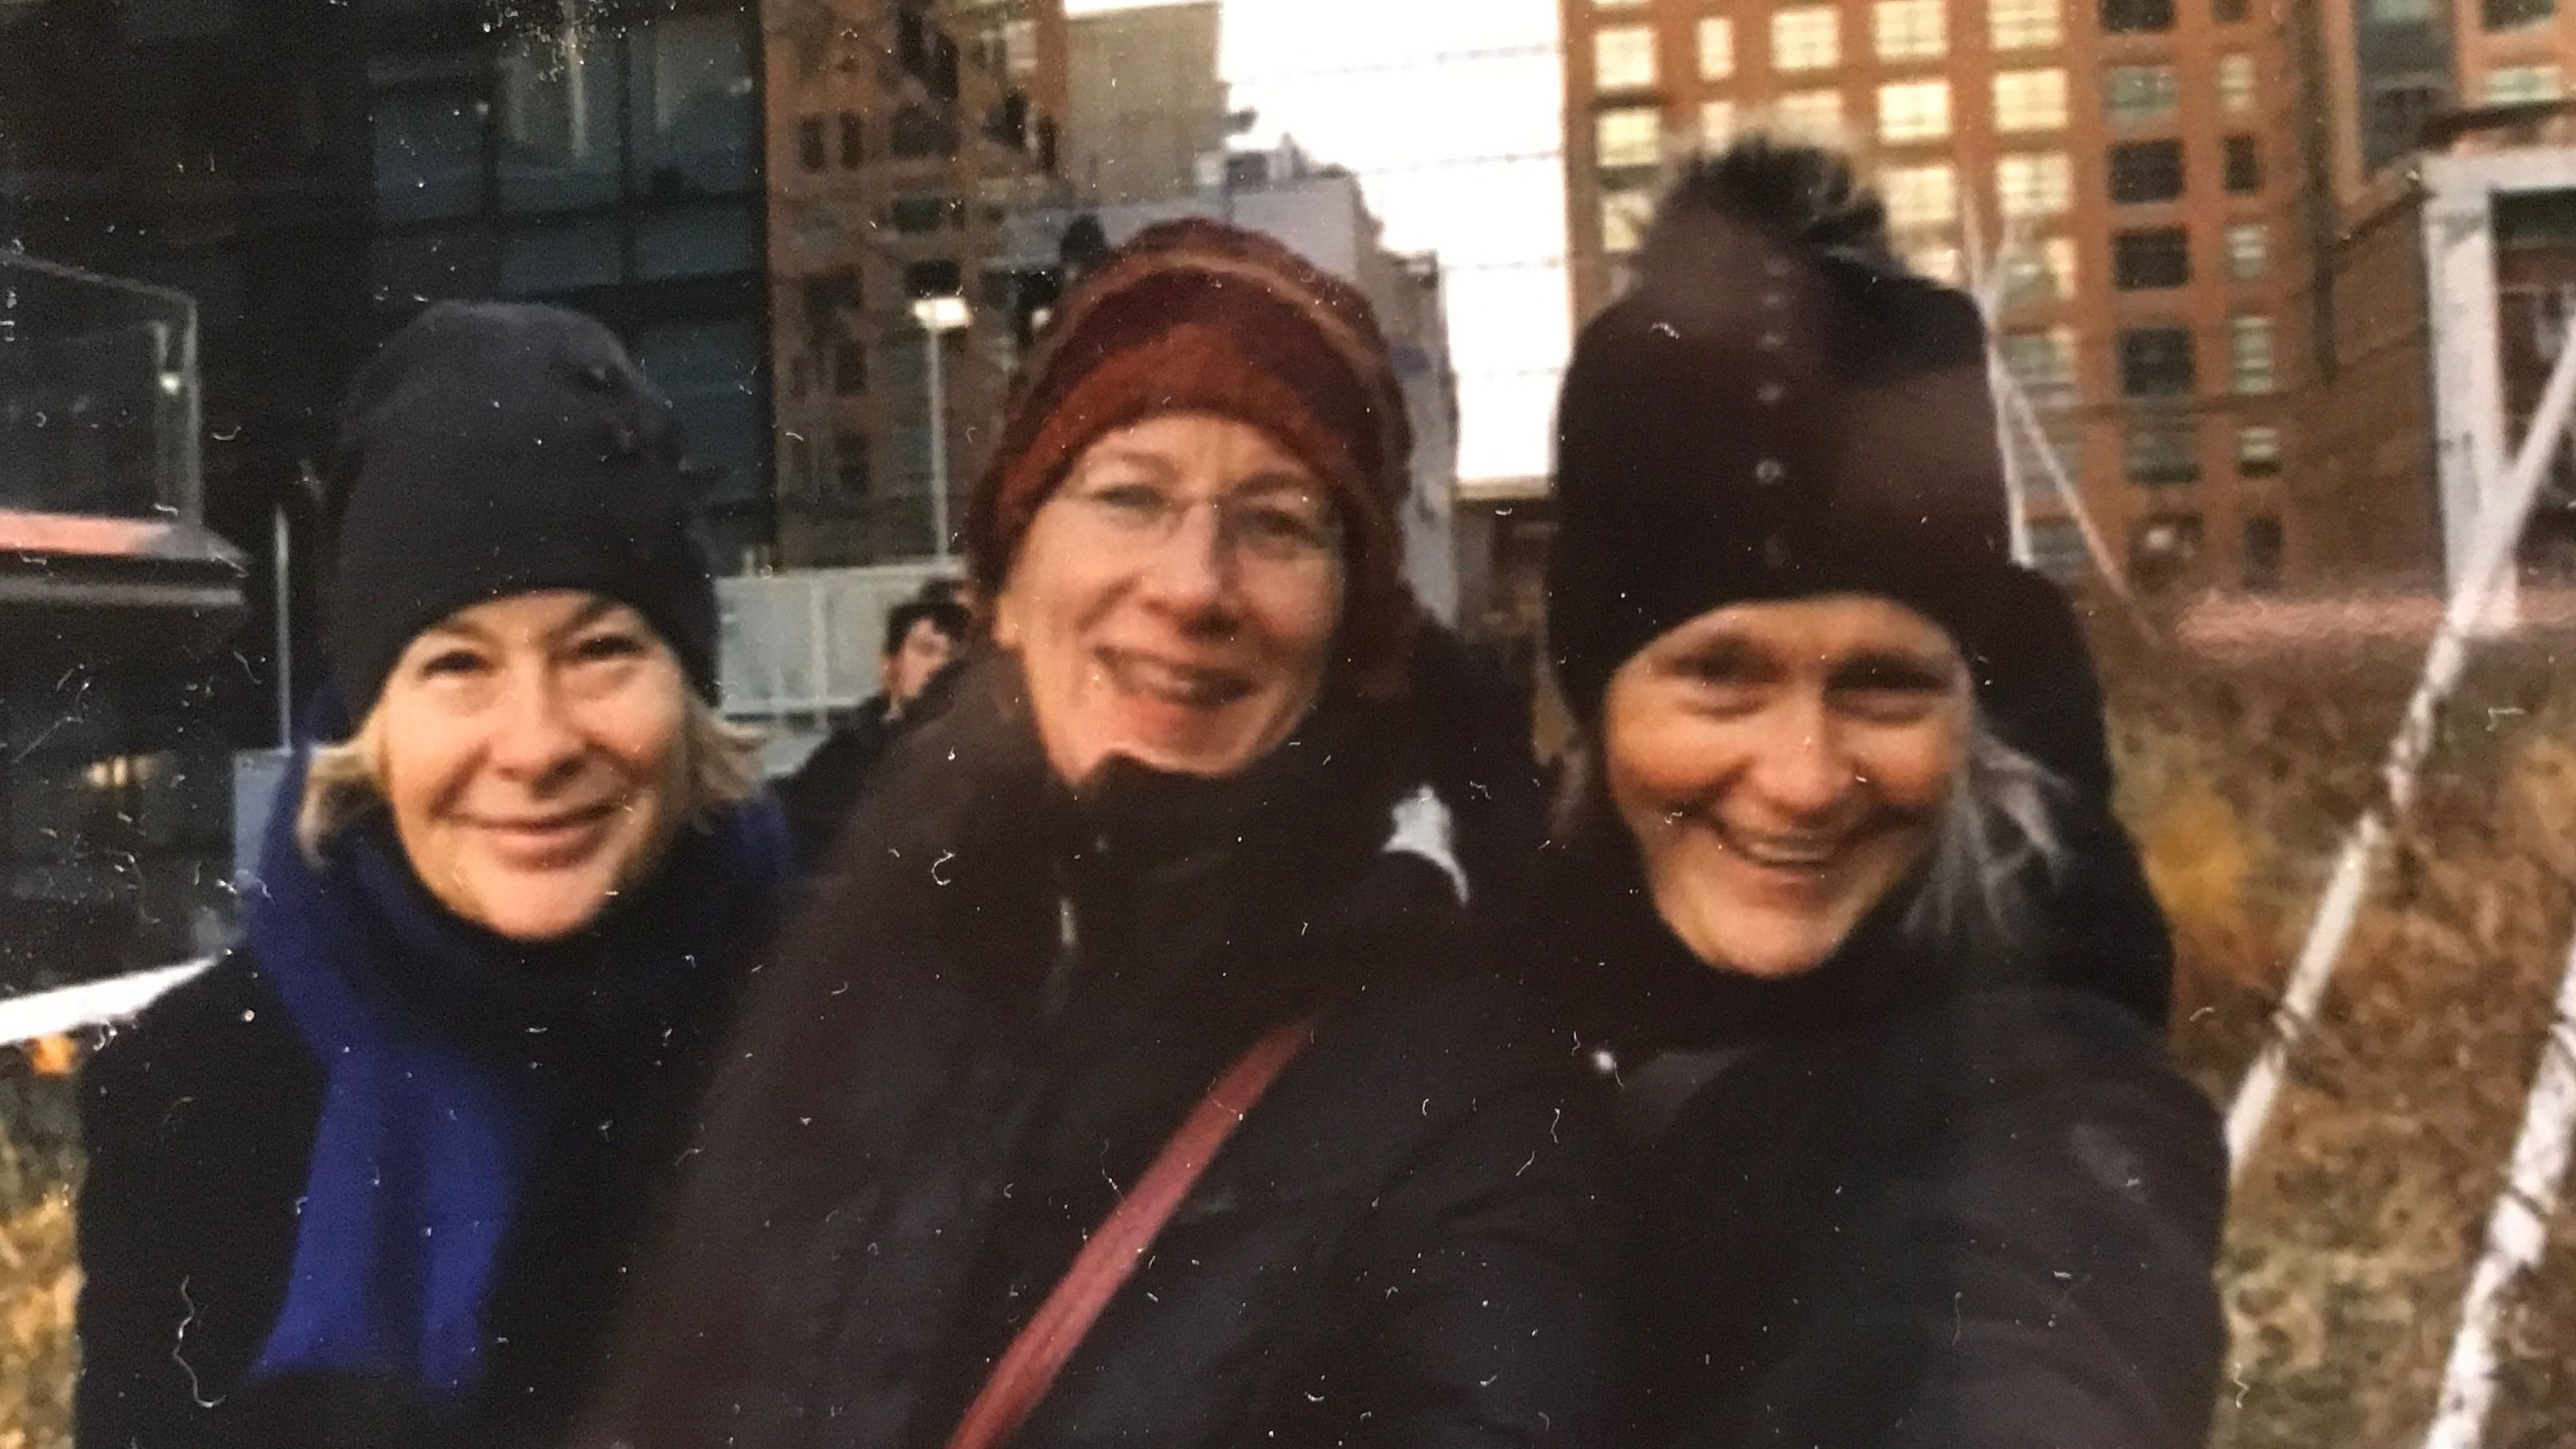 Finding Female friends over fifty in New York